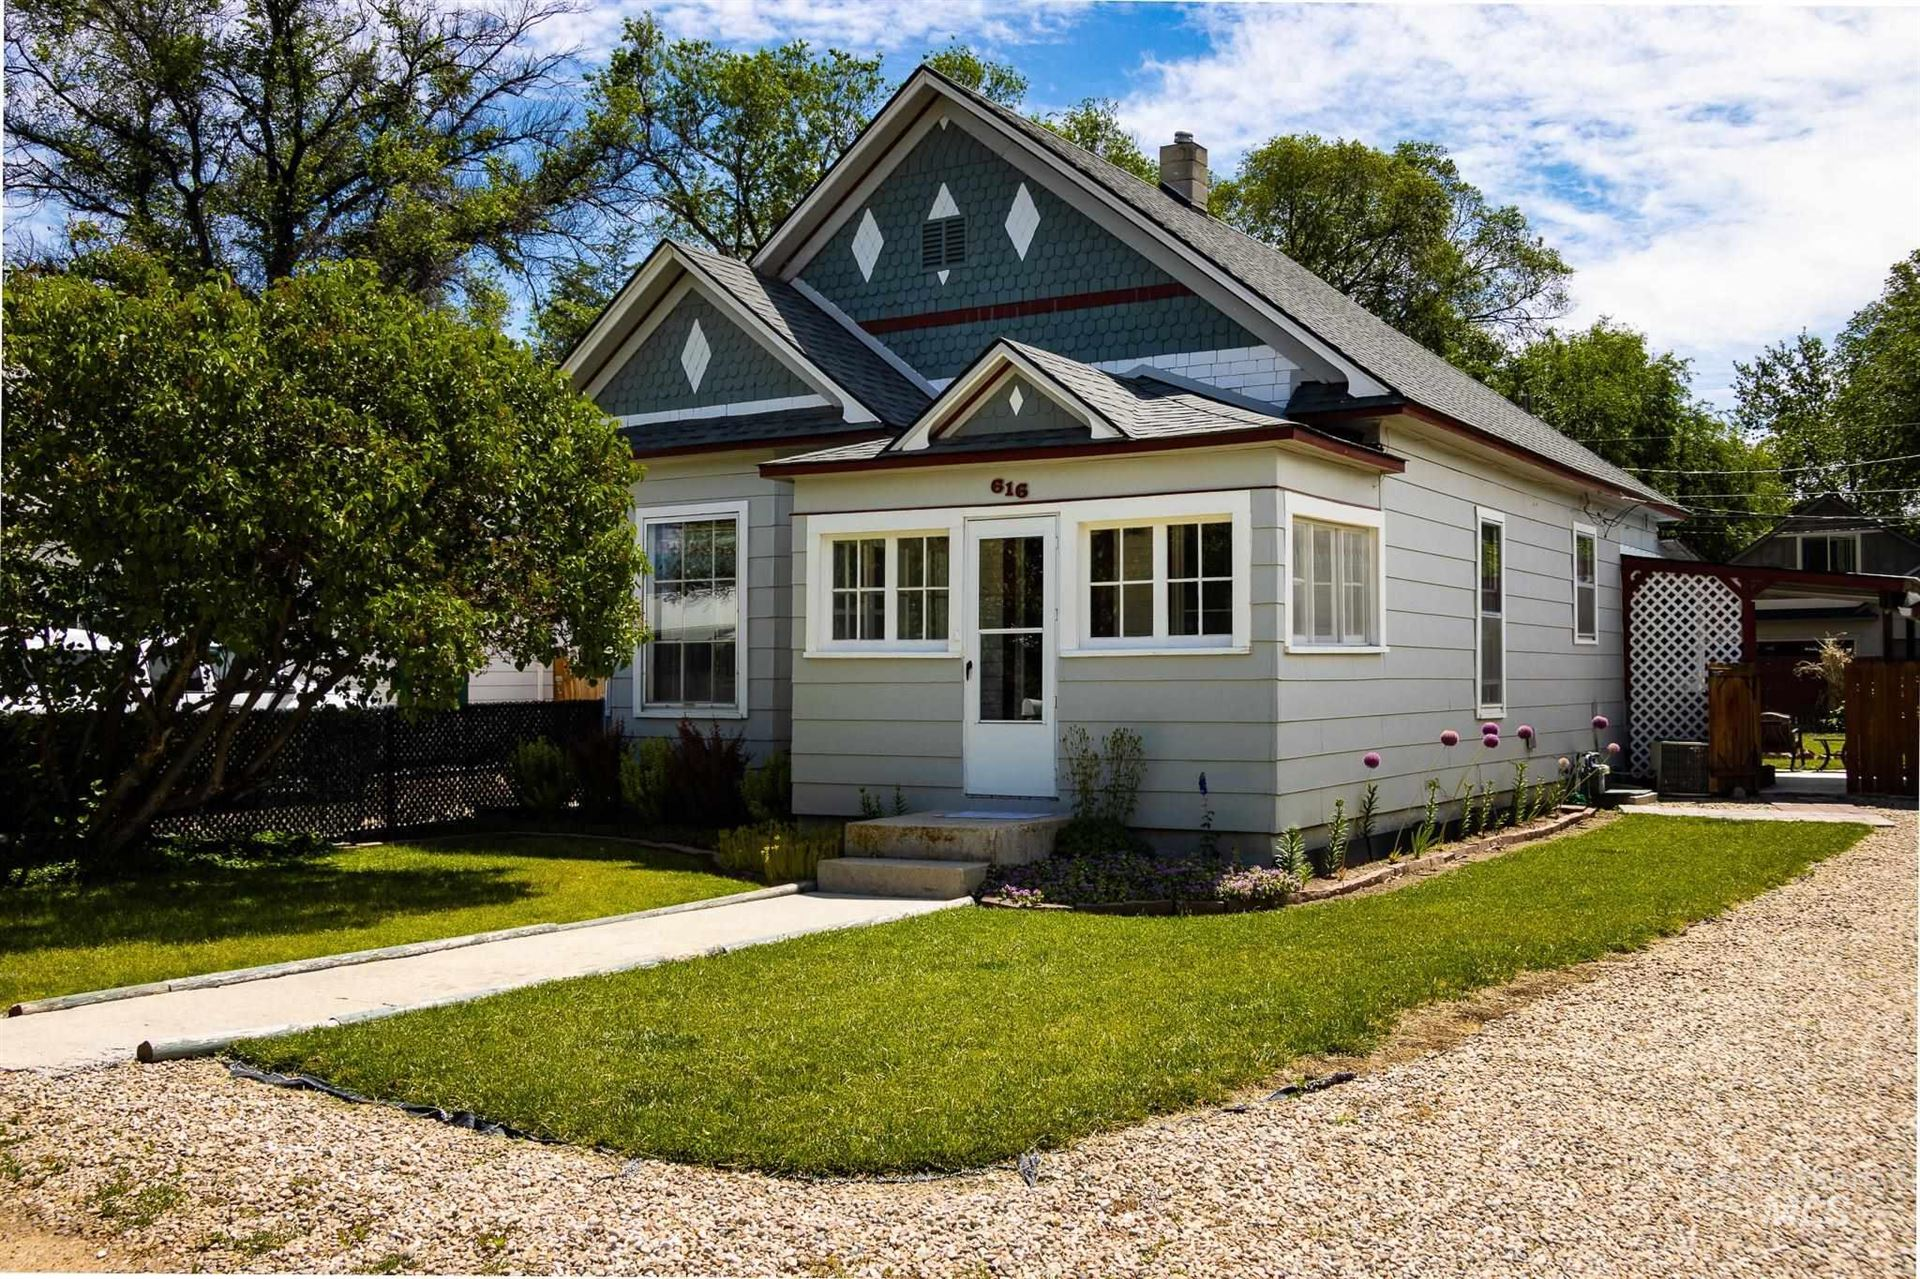 Photo of 616 18th Ave N., Nampa, ID 83687 (MLS # 98806884)